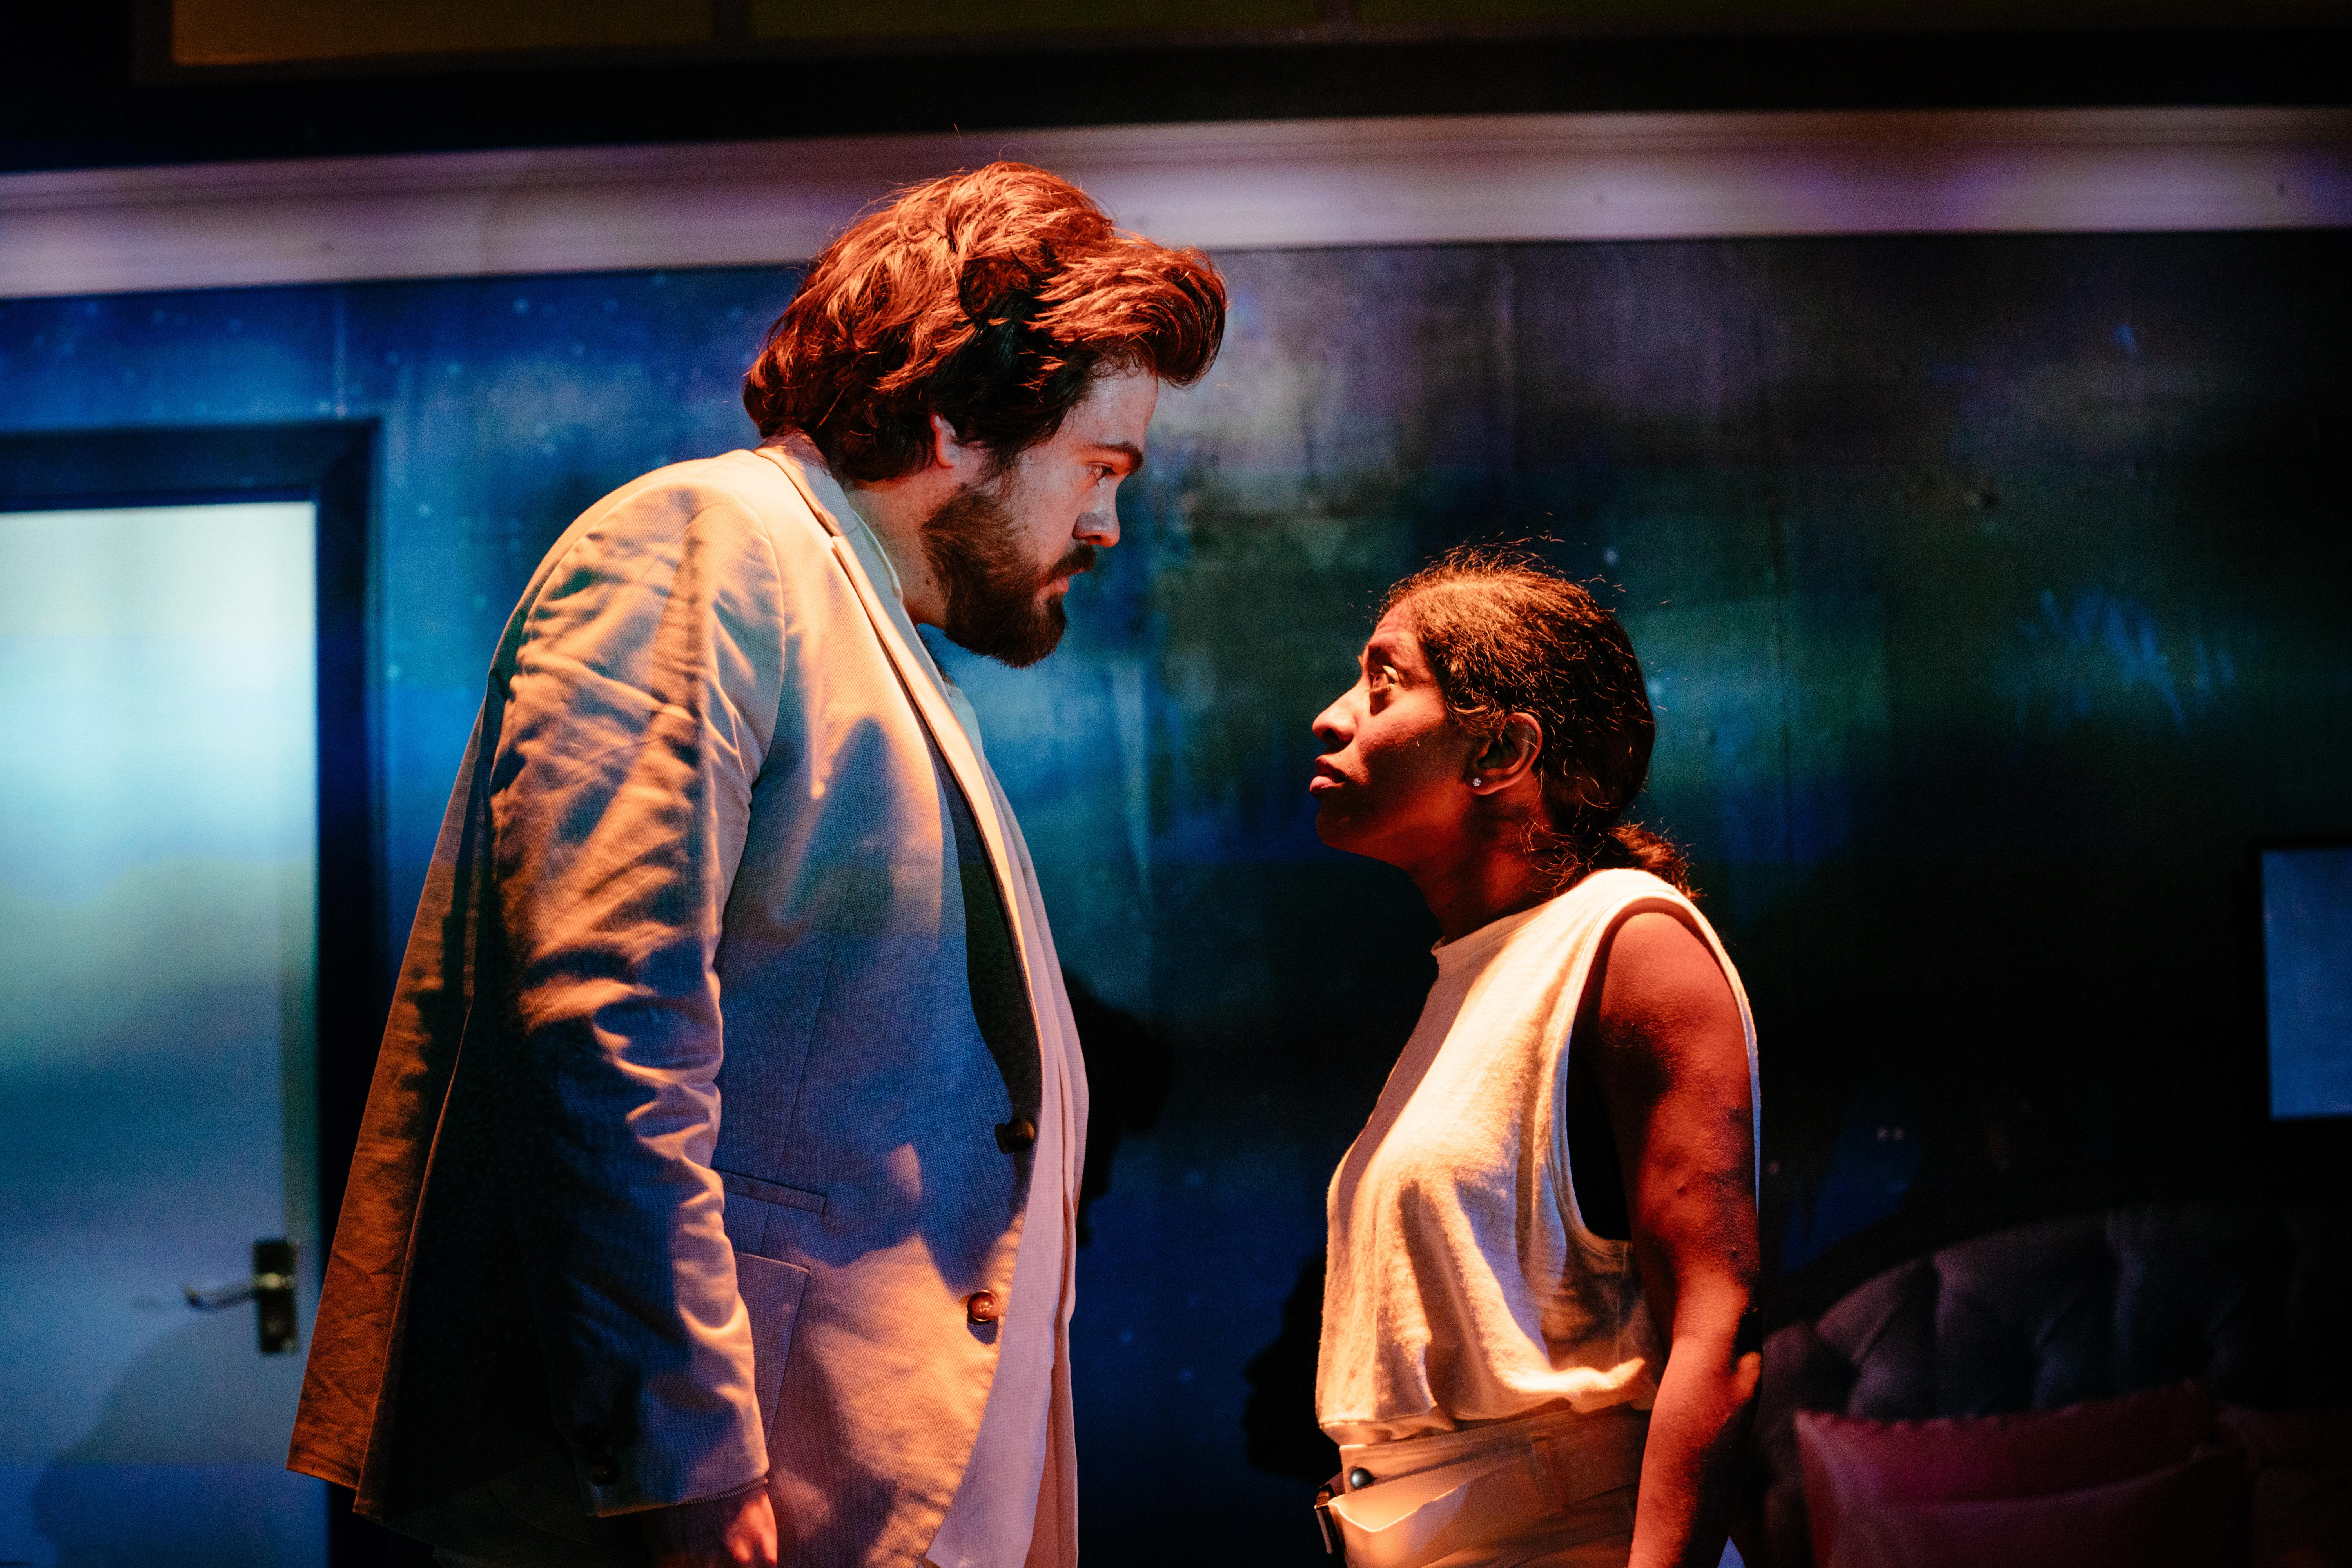 Midnight Movie review – pain relief in the demise of others